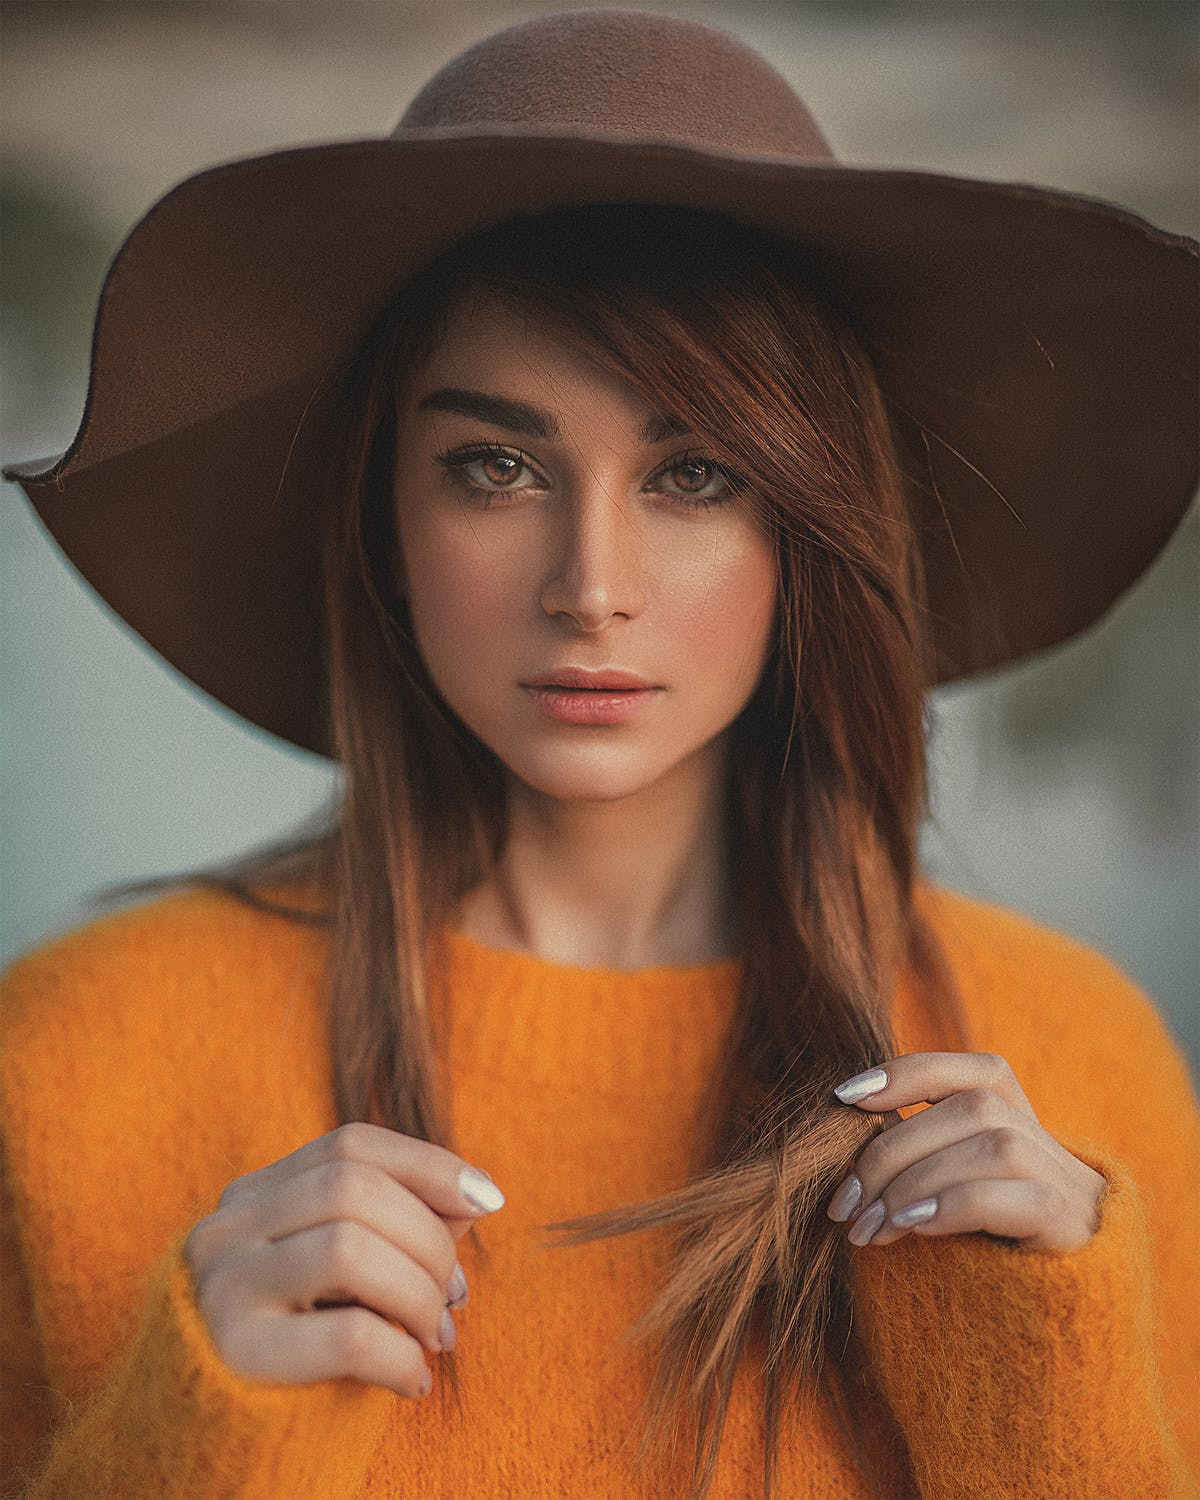 headshot of woman wearing brown hat and orange sweater